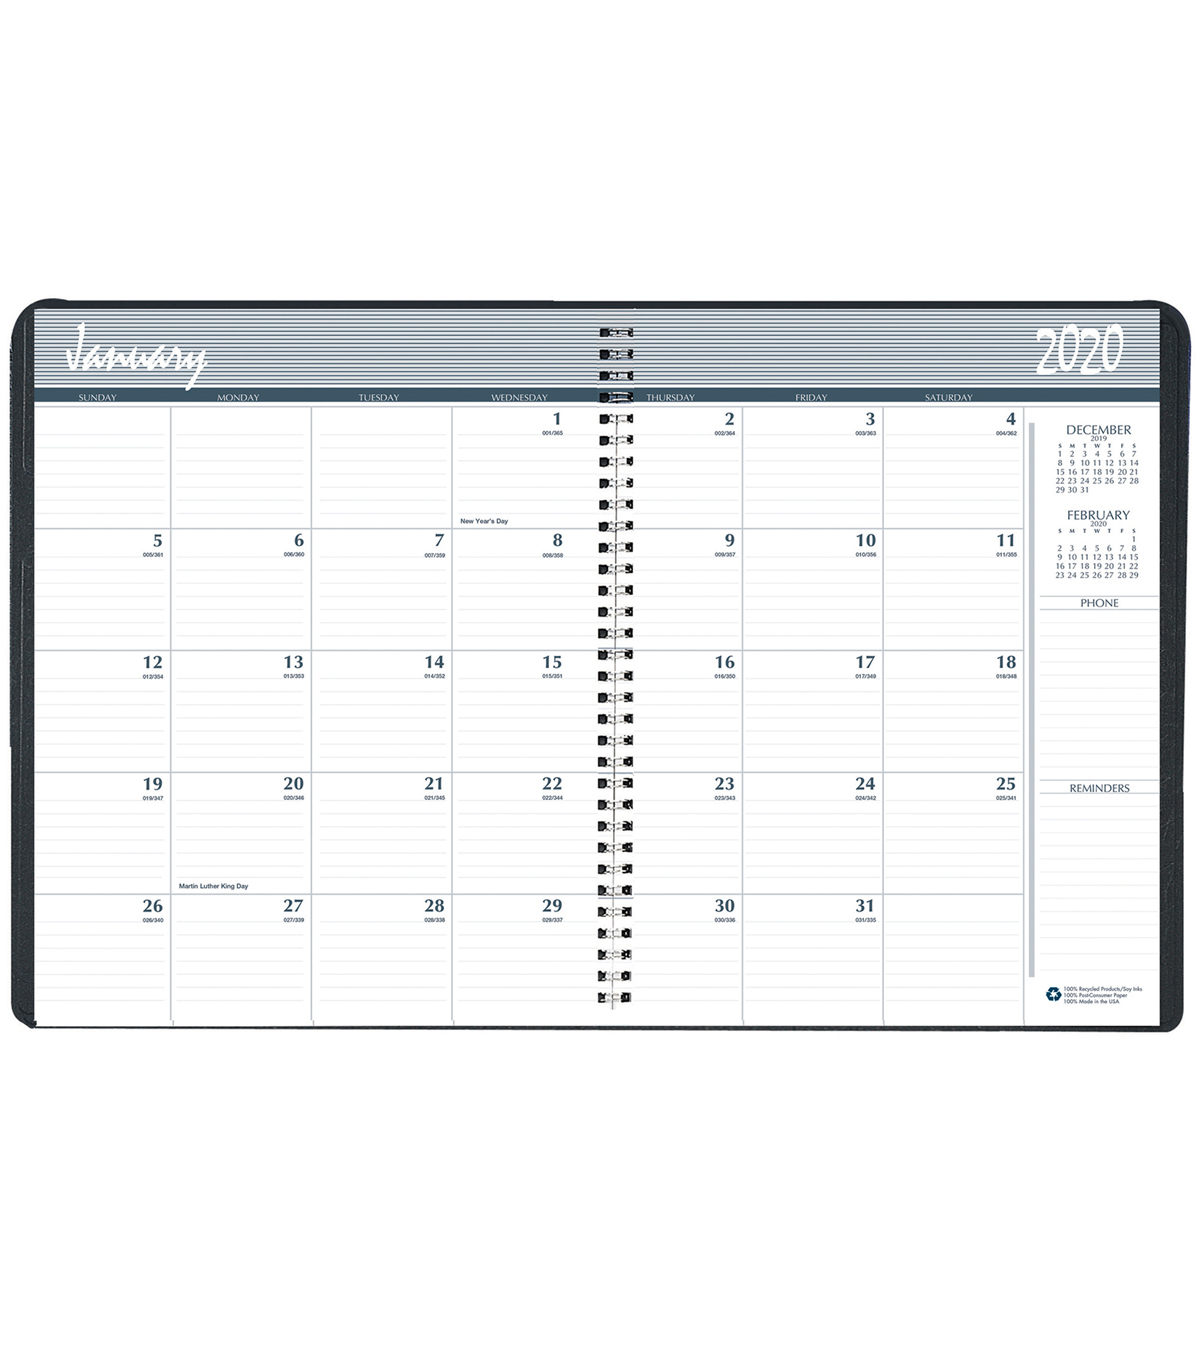 Monthly Planner, 24 months, Jan. 2014-Dec. 2015